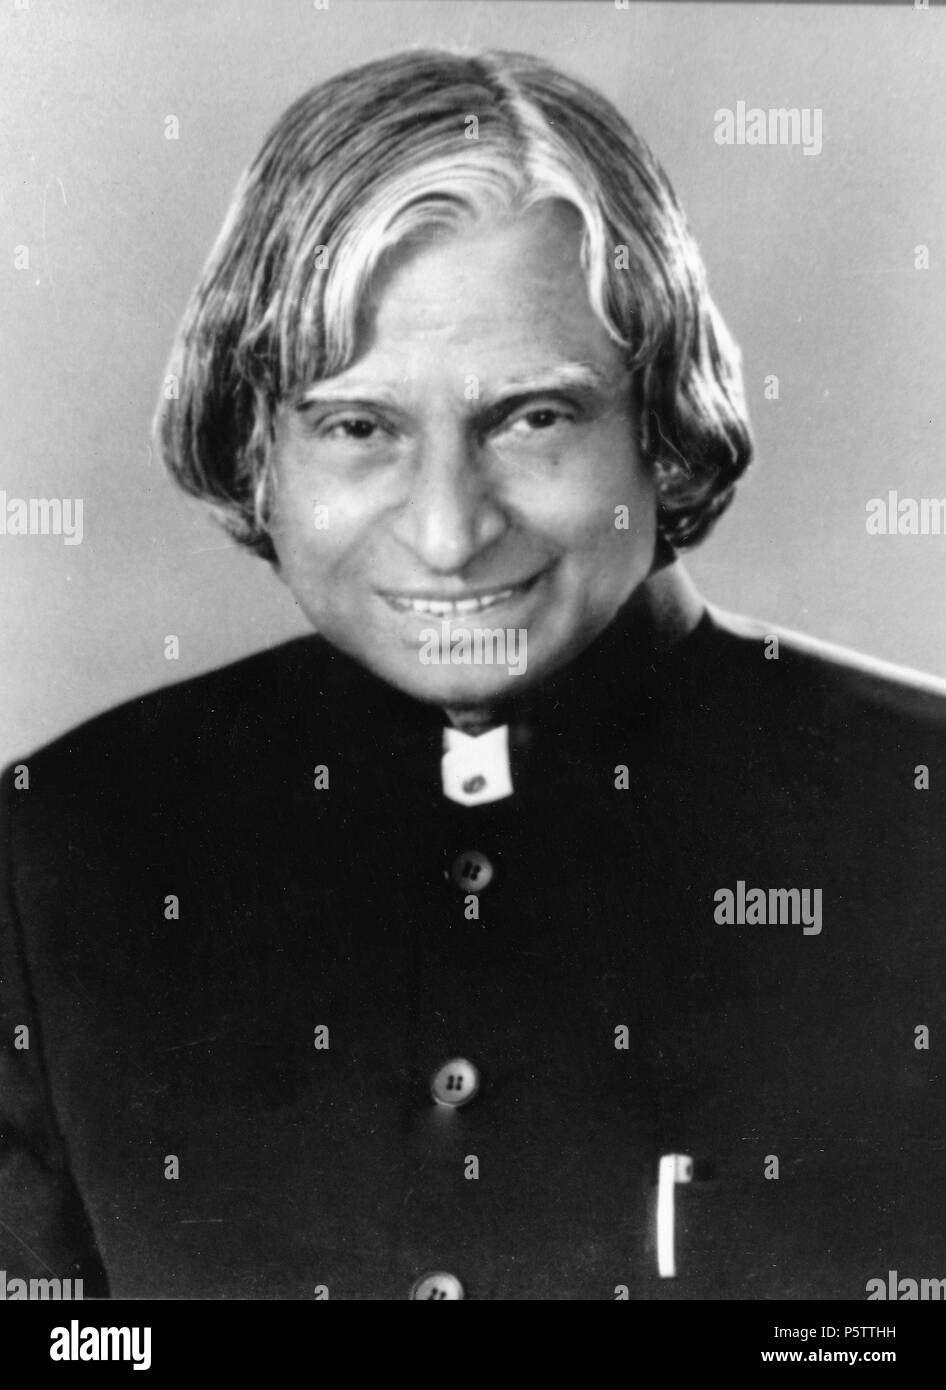 Apj avul pakir jainulabdeen abdul kalam an indian scientist who served as the 11th president